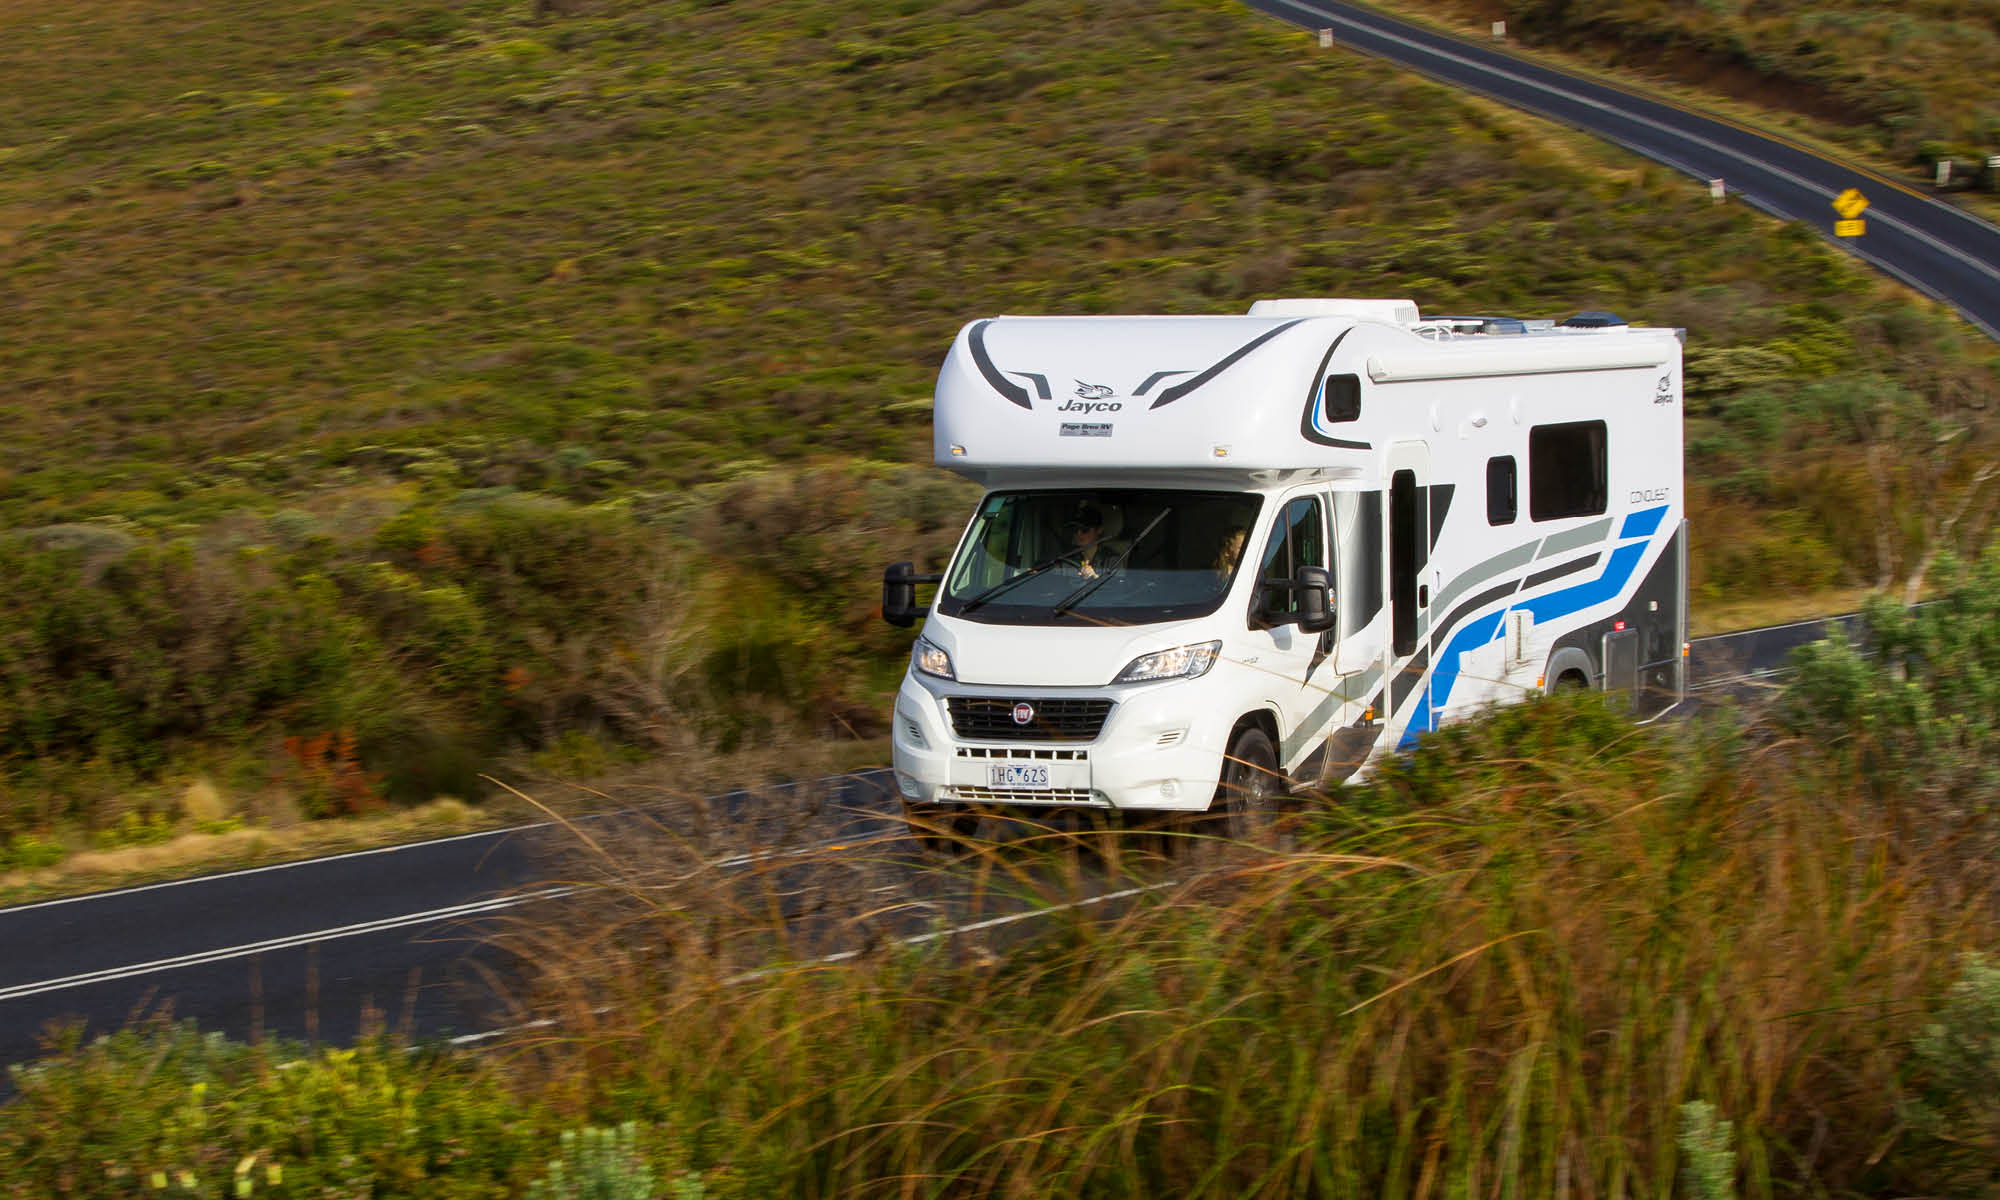 A Motorhome for the Sceptic